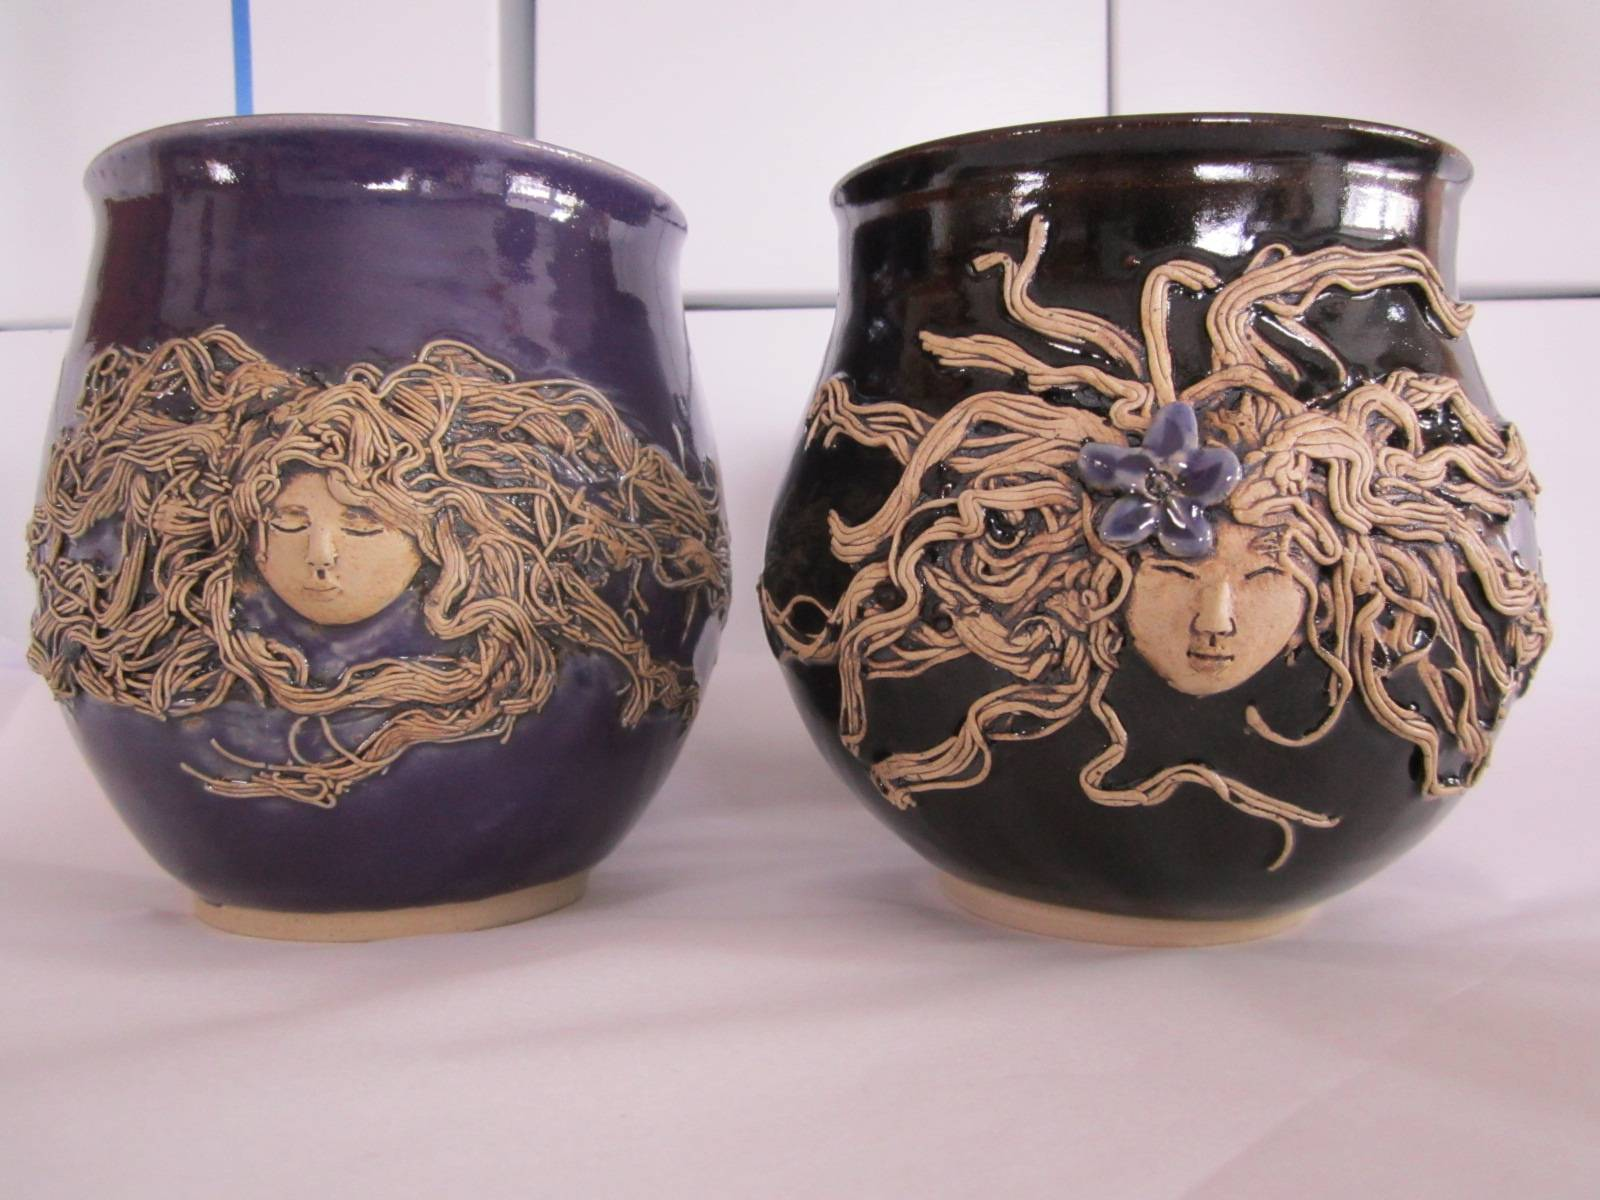 Women in water mugs by Cheryl